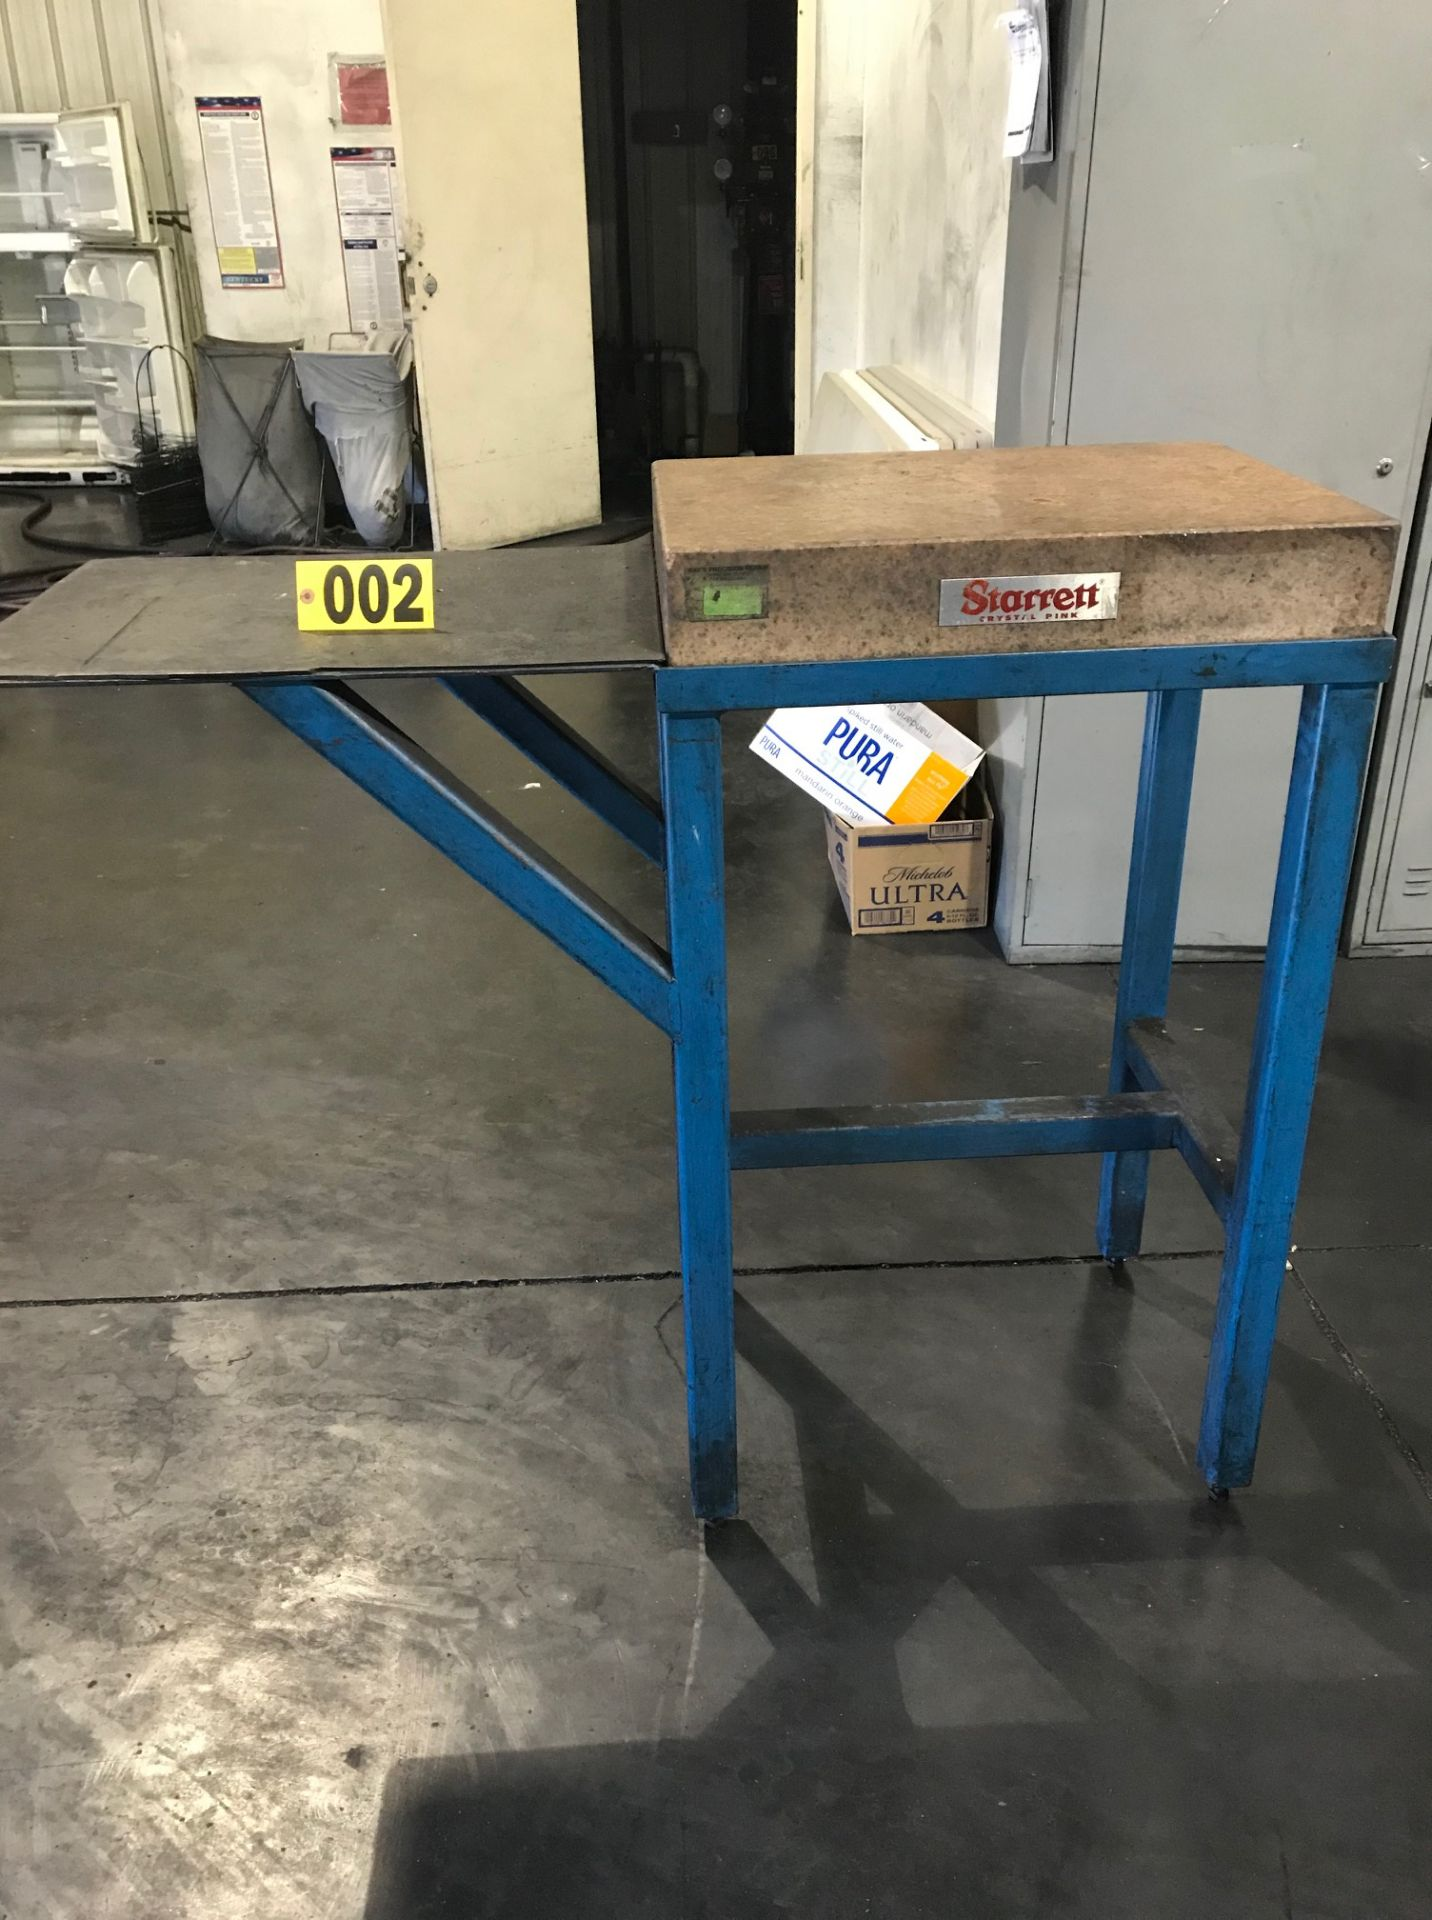 Lot 2 - Starrett surface plate 18in x 2ft, w/ stand